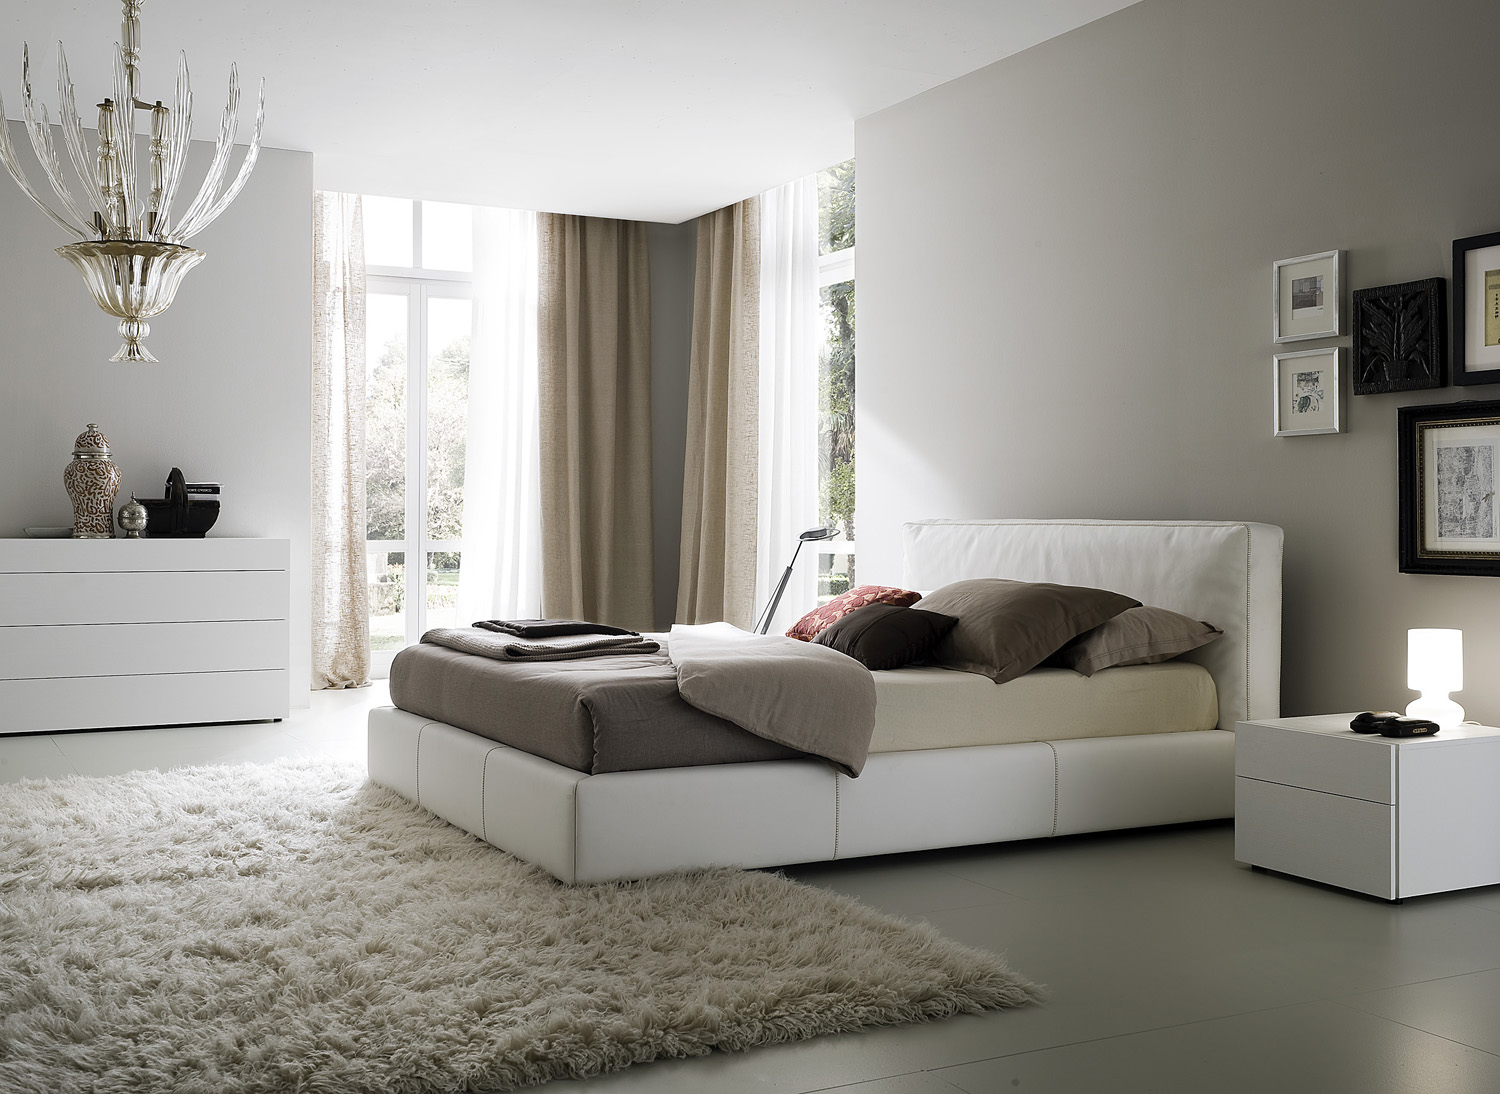 Bedroom decorating ideas from evinco for Ideas bedroom designs